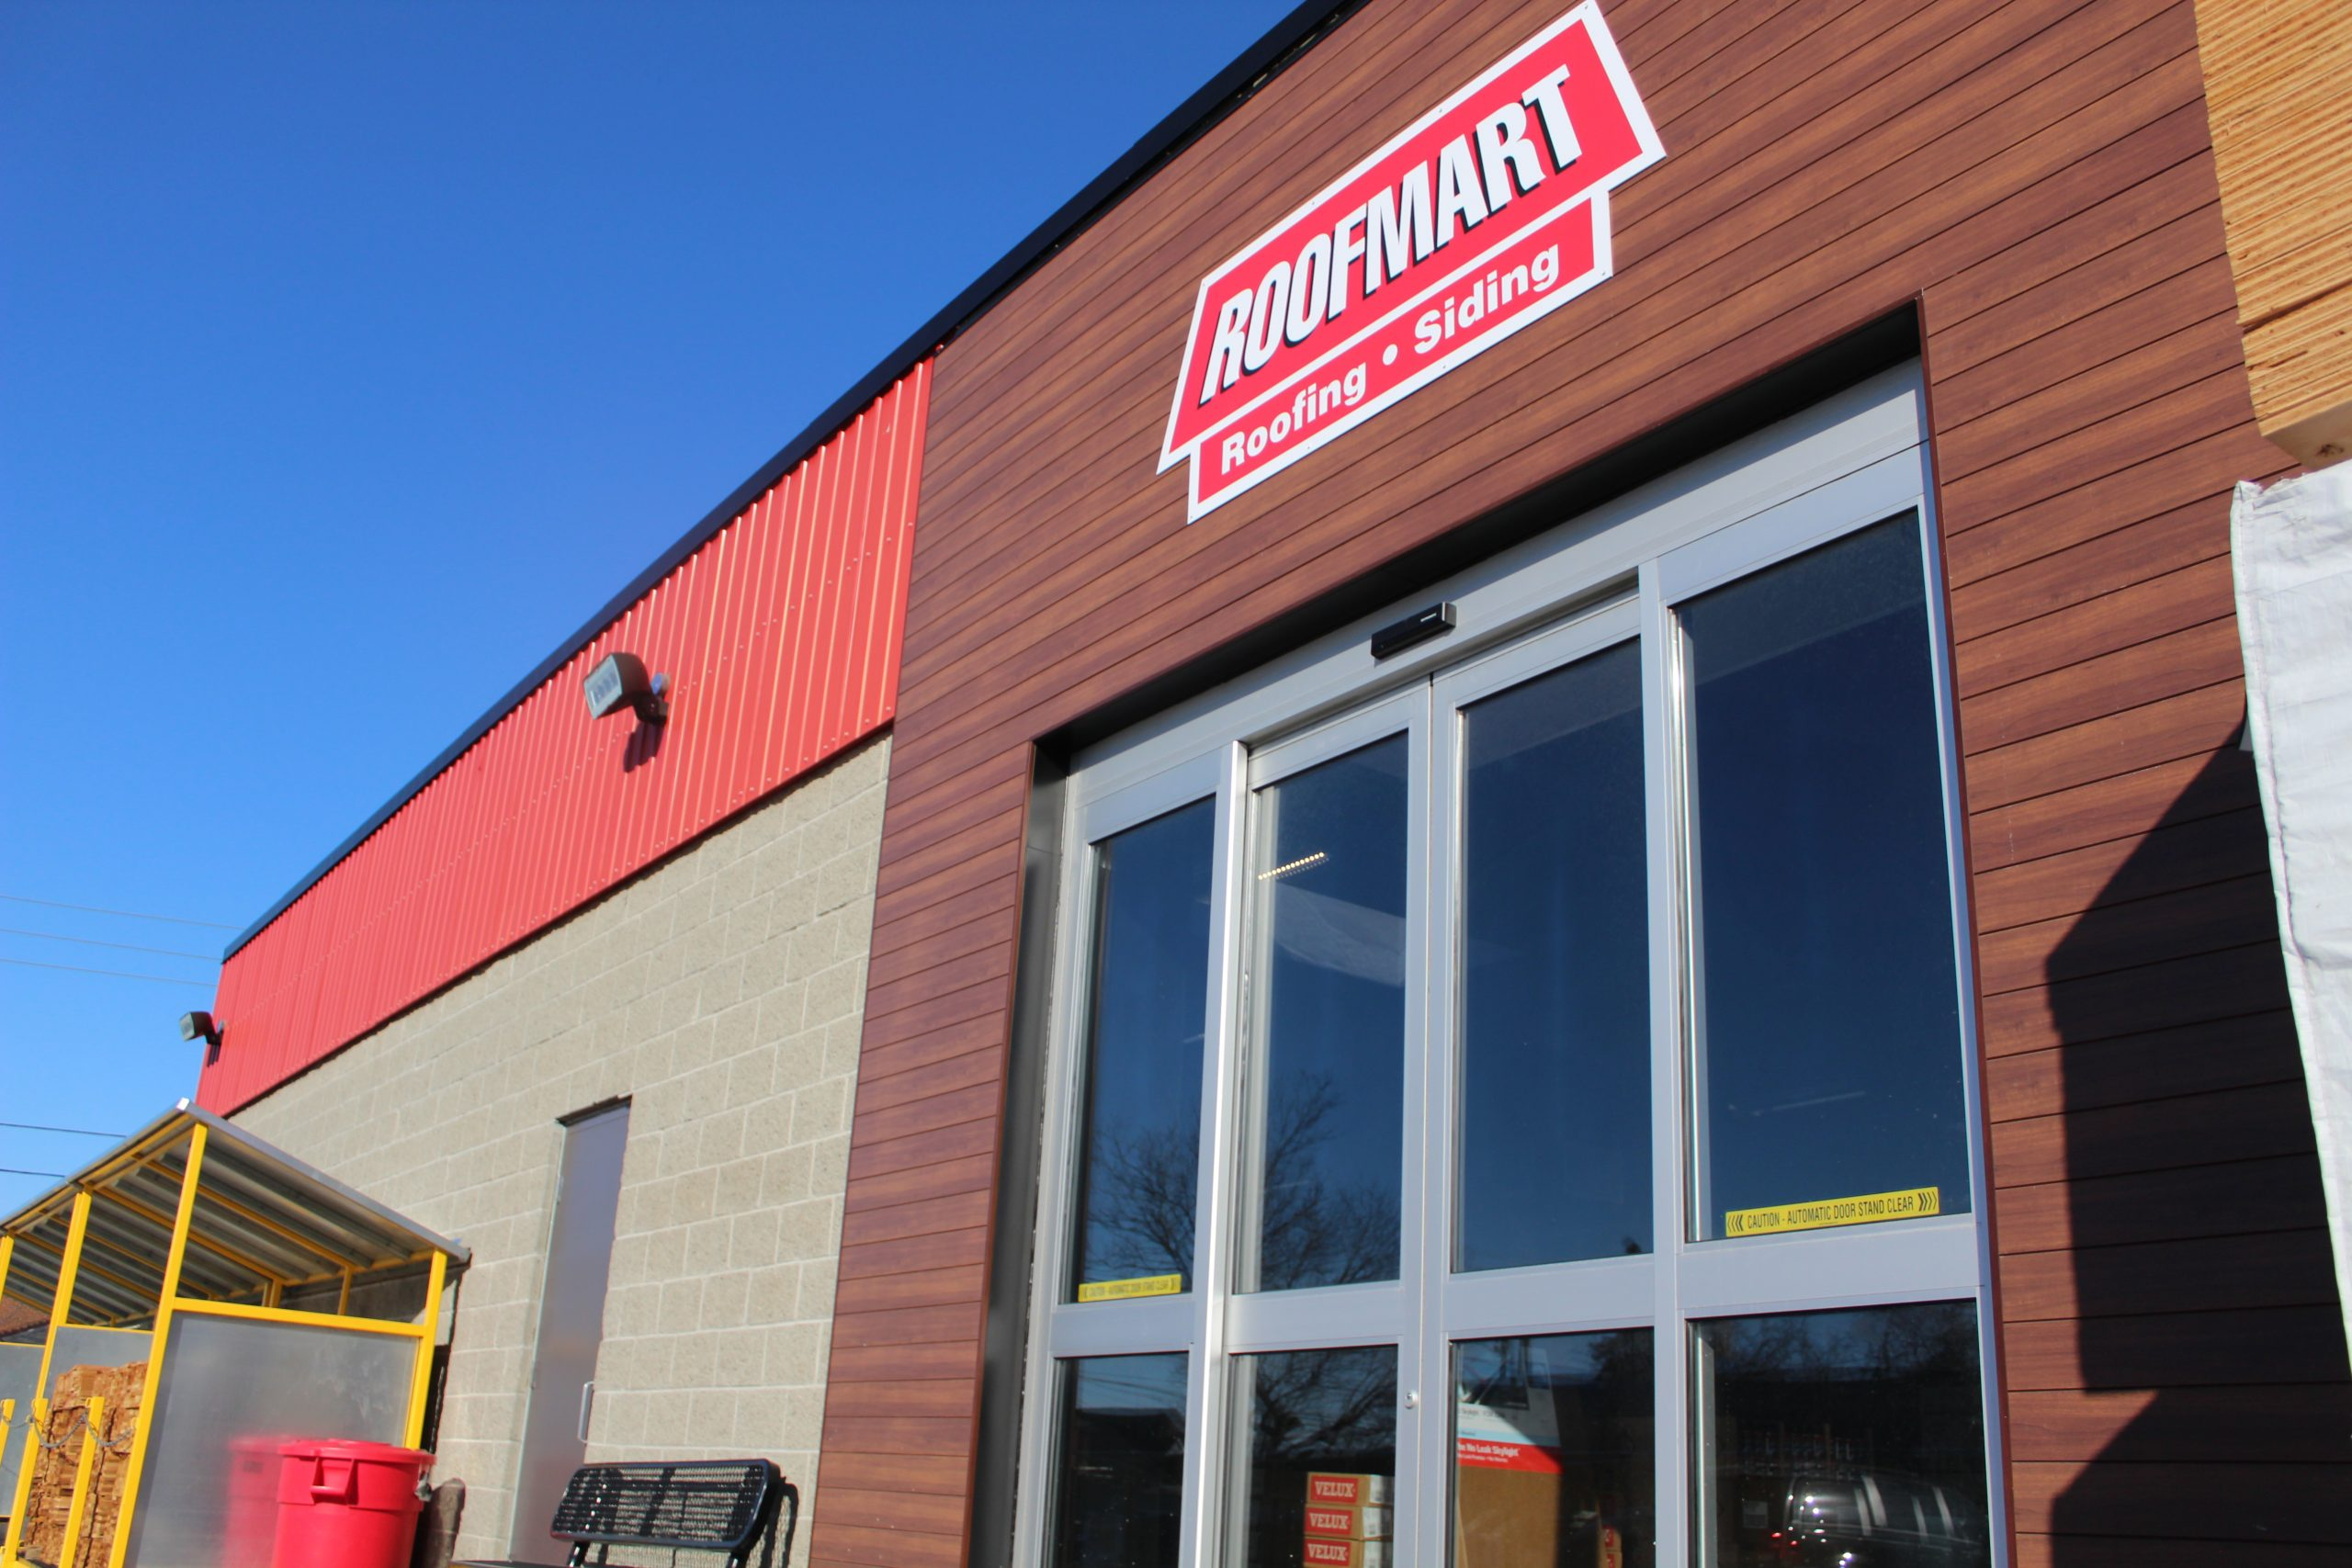 Roofmart Connie Street Location Renovations